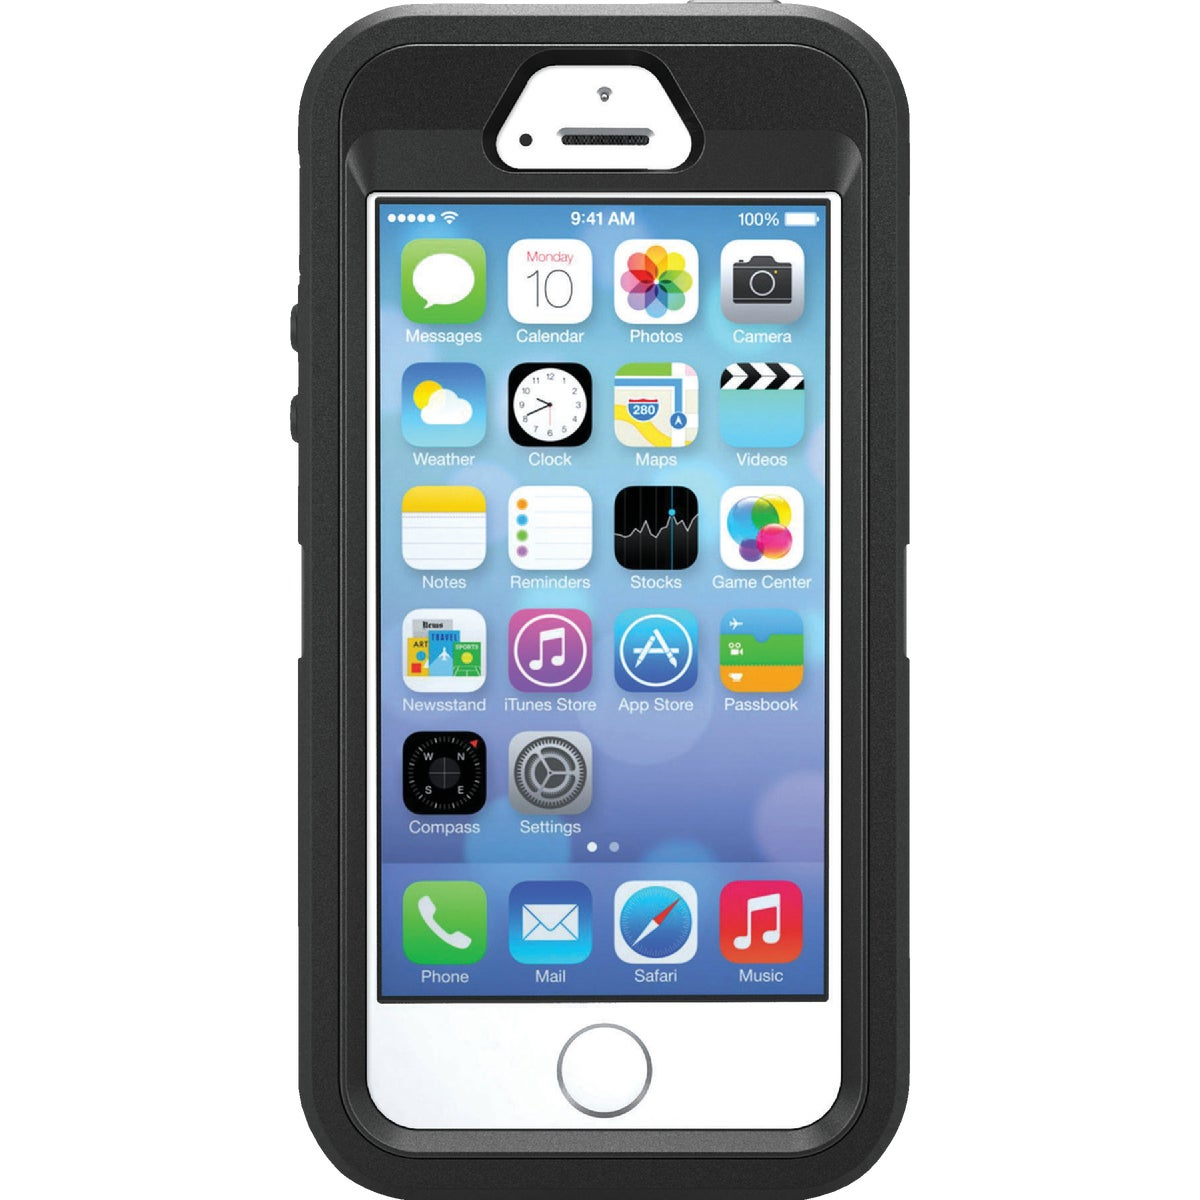 IPHONE5S BLK DEFEND CASE - 77-33322P1 by Nite Ize   Rcp